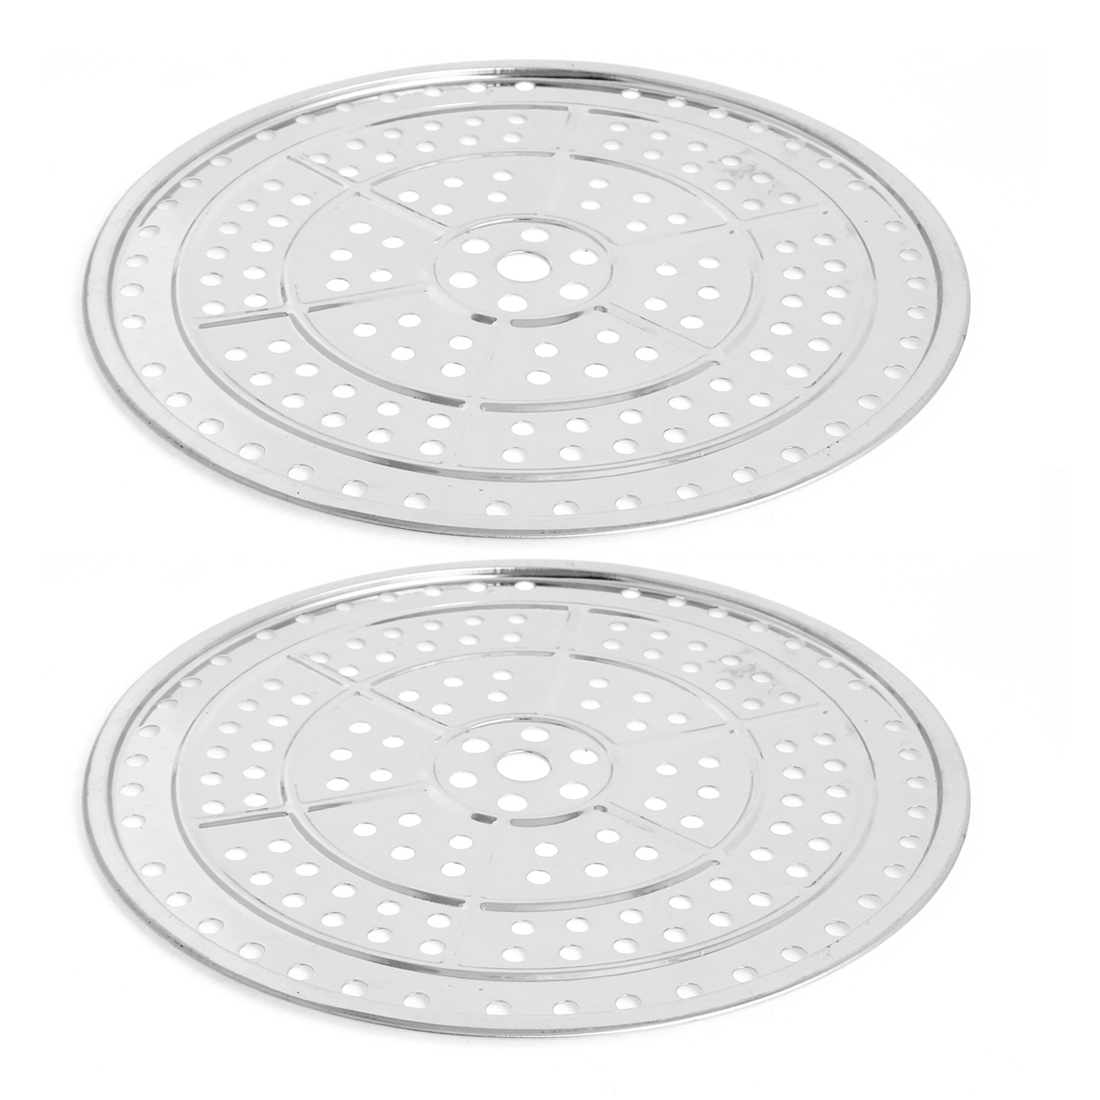 "2pcs 12.6"" Stainless Steel Cooking Food Steaming Steamer Rack Plate"